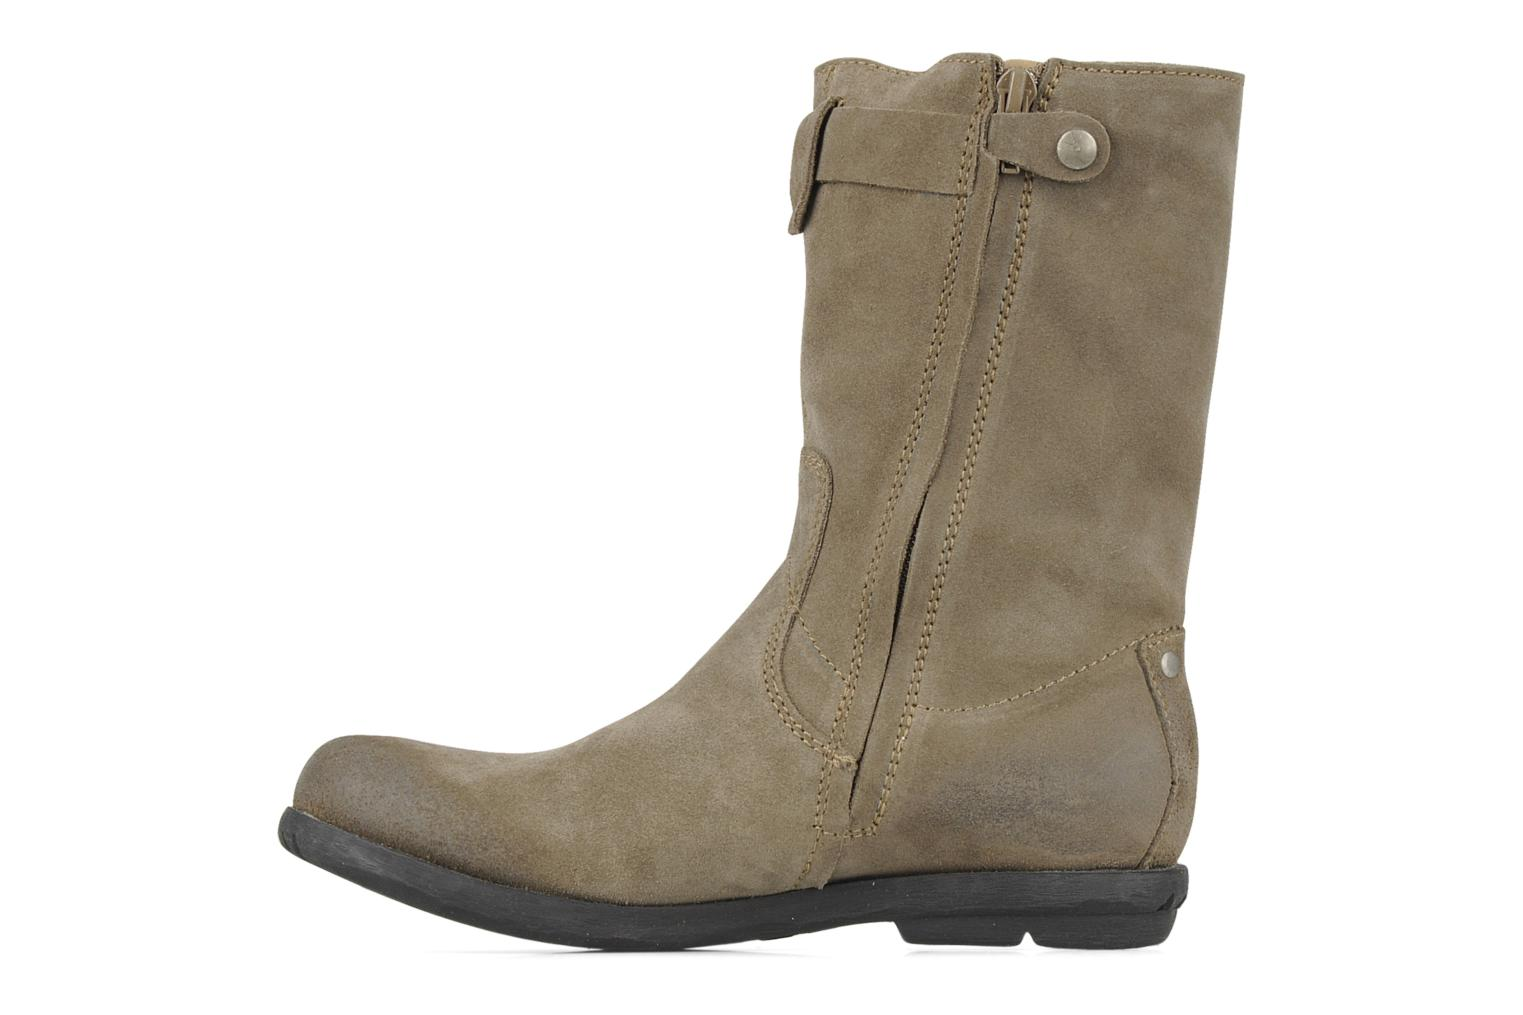 Bottes Palladium Daisy kid sud Marron vue face